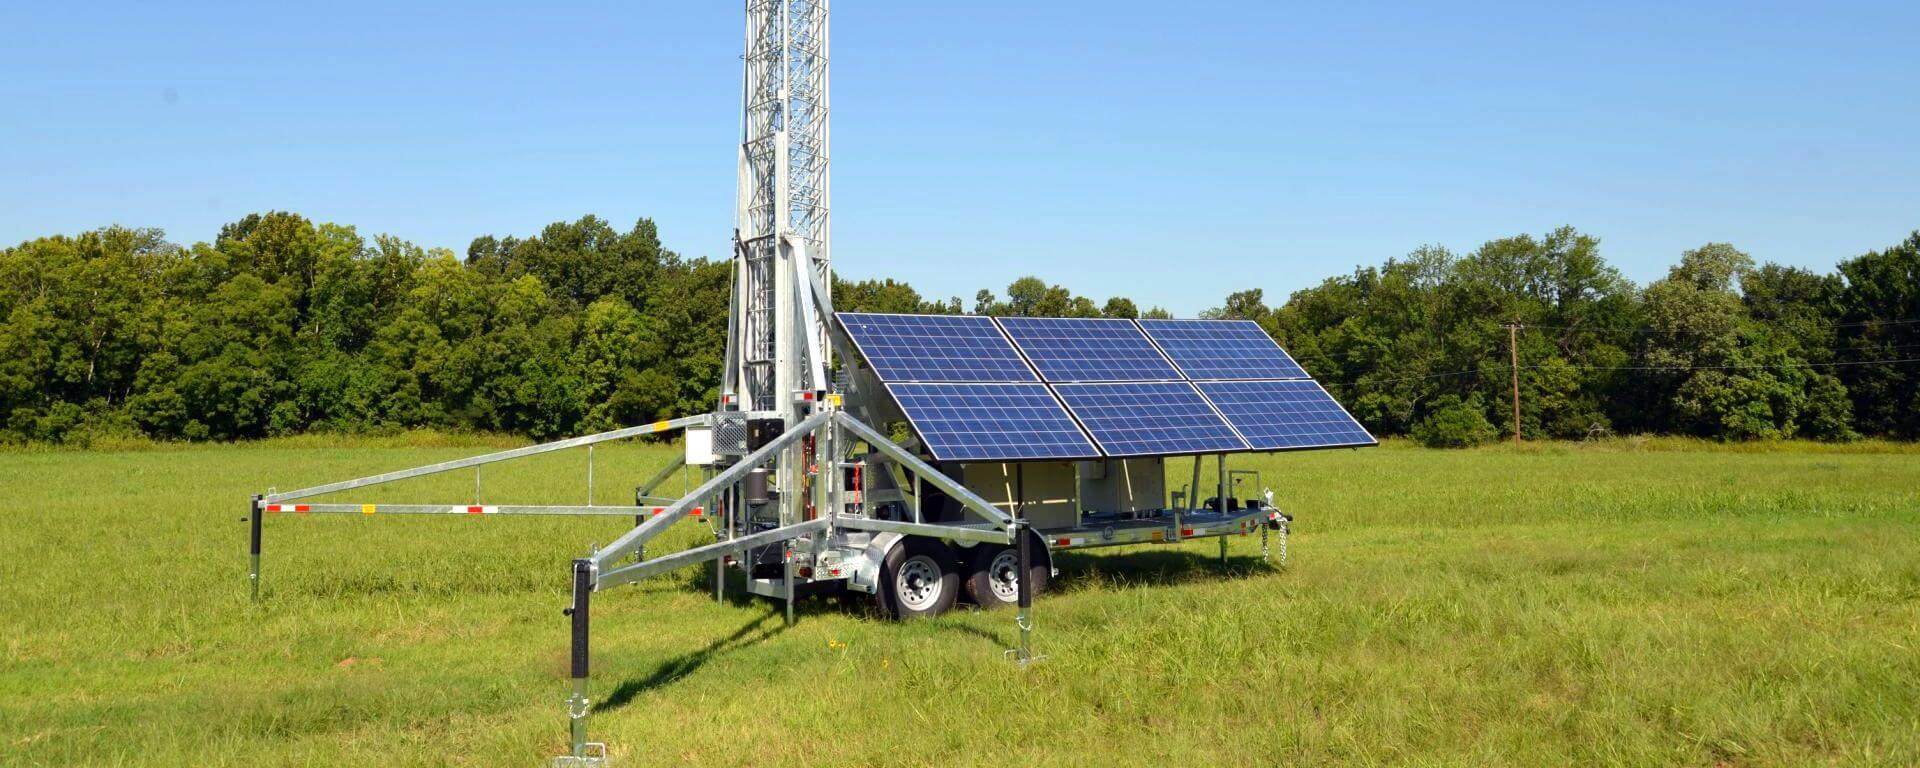 1920×768-AllTech-Communications-Cell-on-Wheels-Telescopic-Tower-Trailer-amp-Telecom-Shelter-Manufacturing-Company-Slider-5